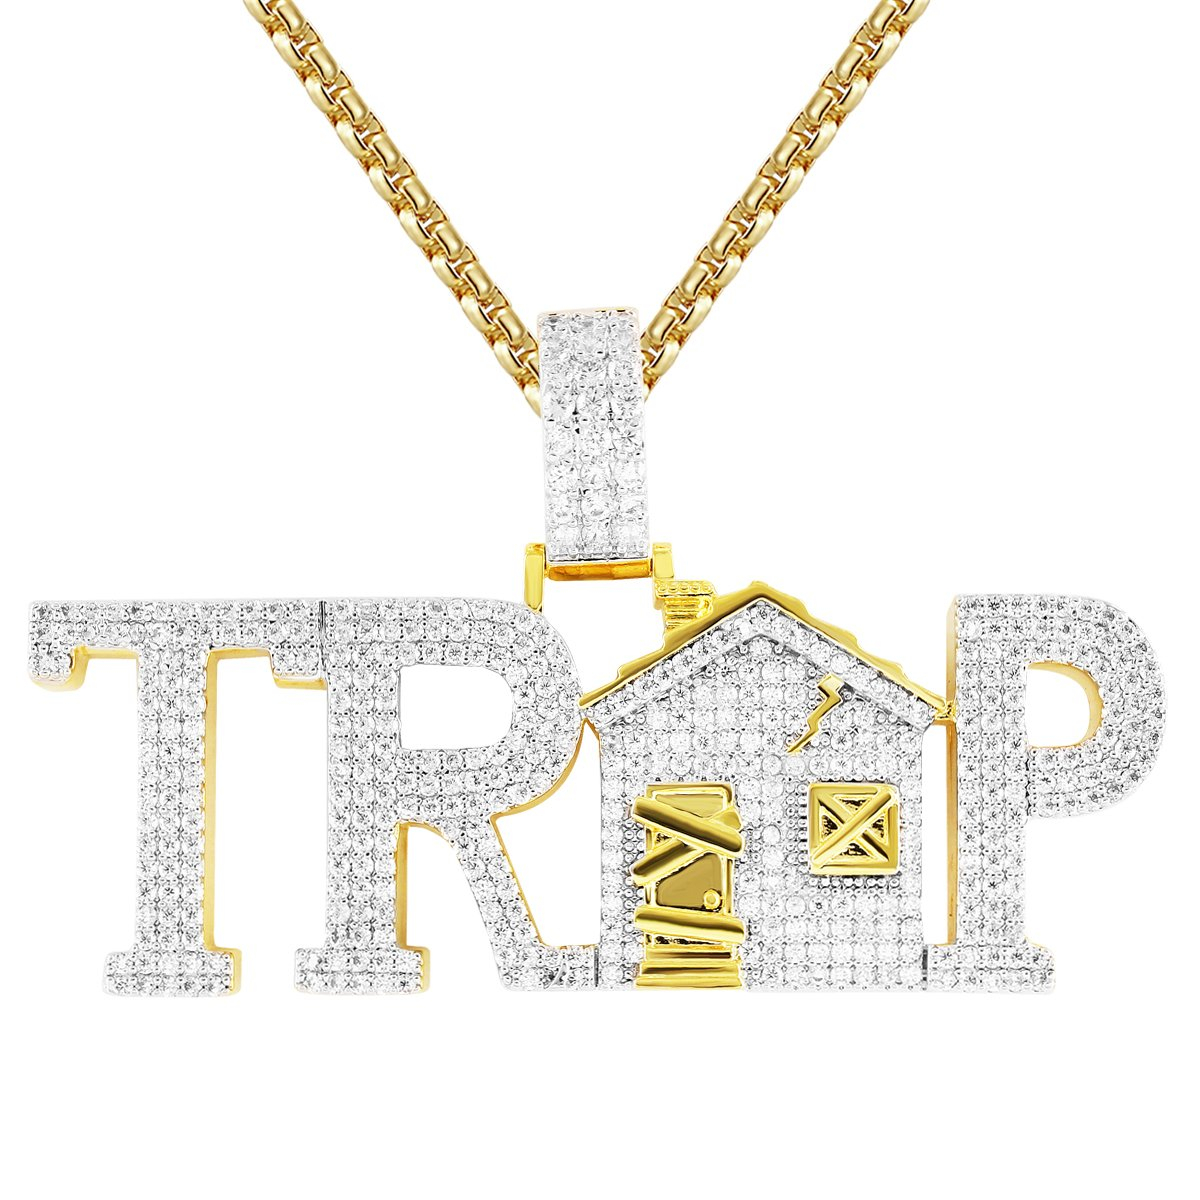 Image of Gold Finish Trap House Bling Rapper Pendant Free Box Chain